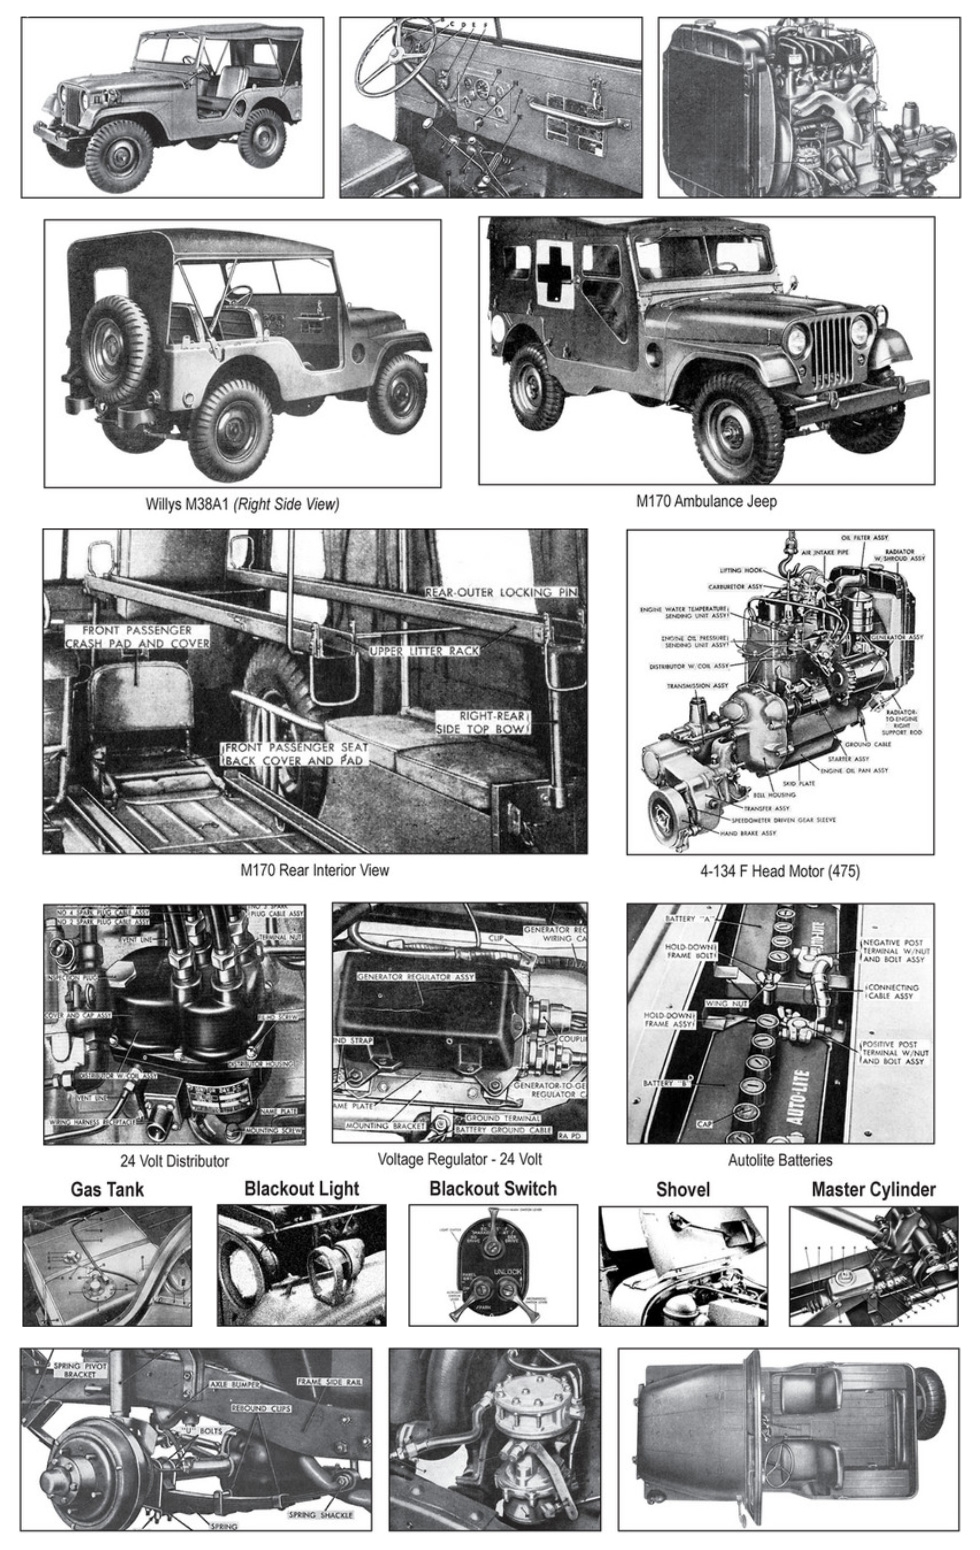 medium resolution of willys m38a1 detailed views